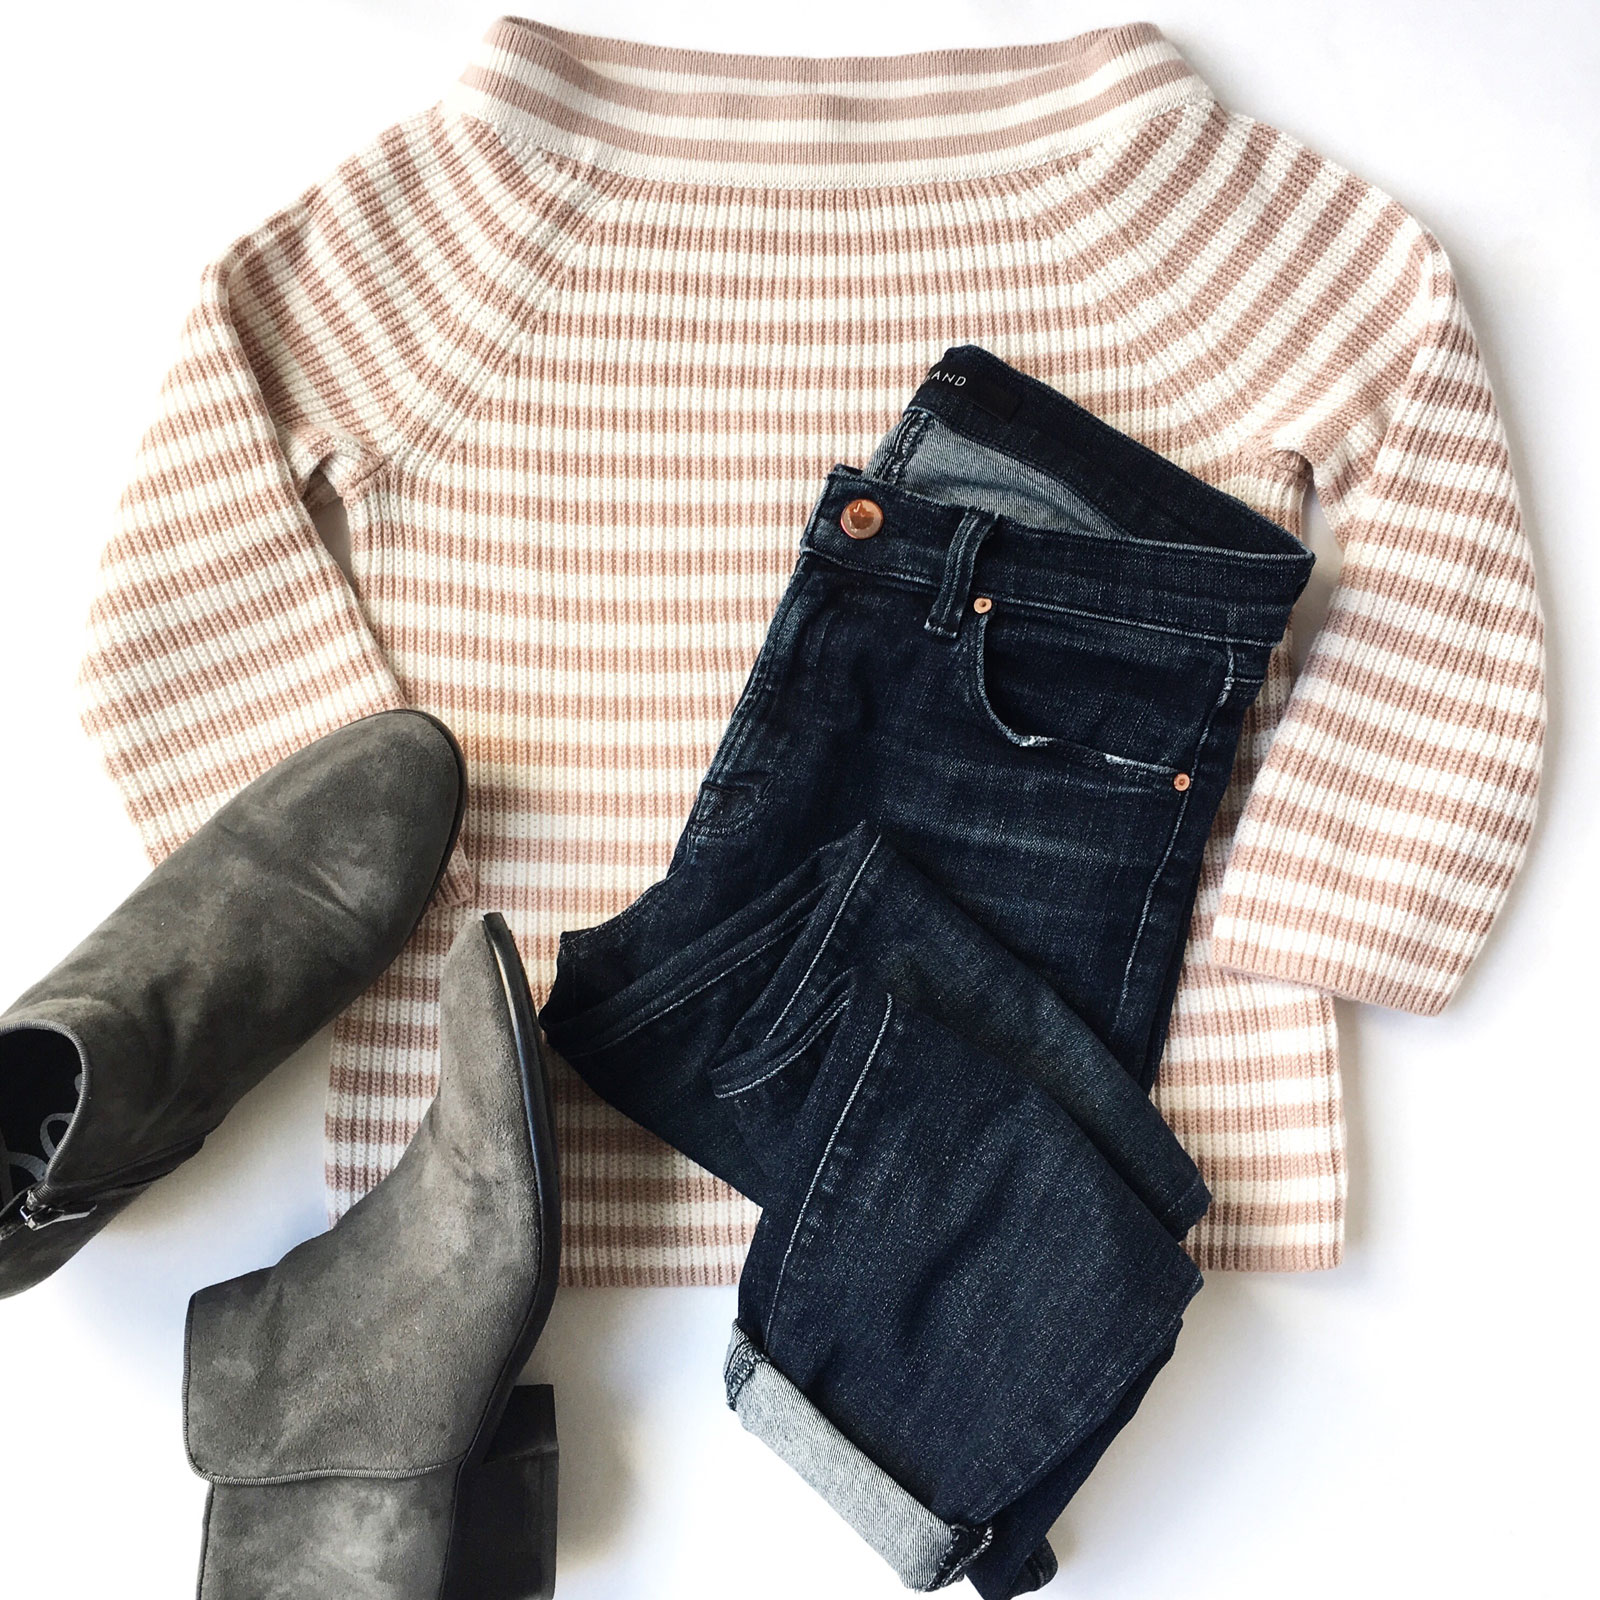 Striped pink boatneck sweater | skinny jeans | grey booties | see the full details on www.shoppingmycloset.com #casualoutfit #weekendlook